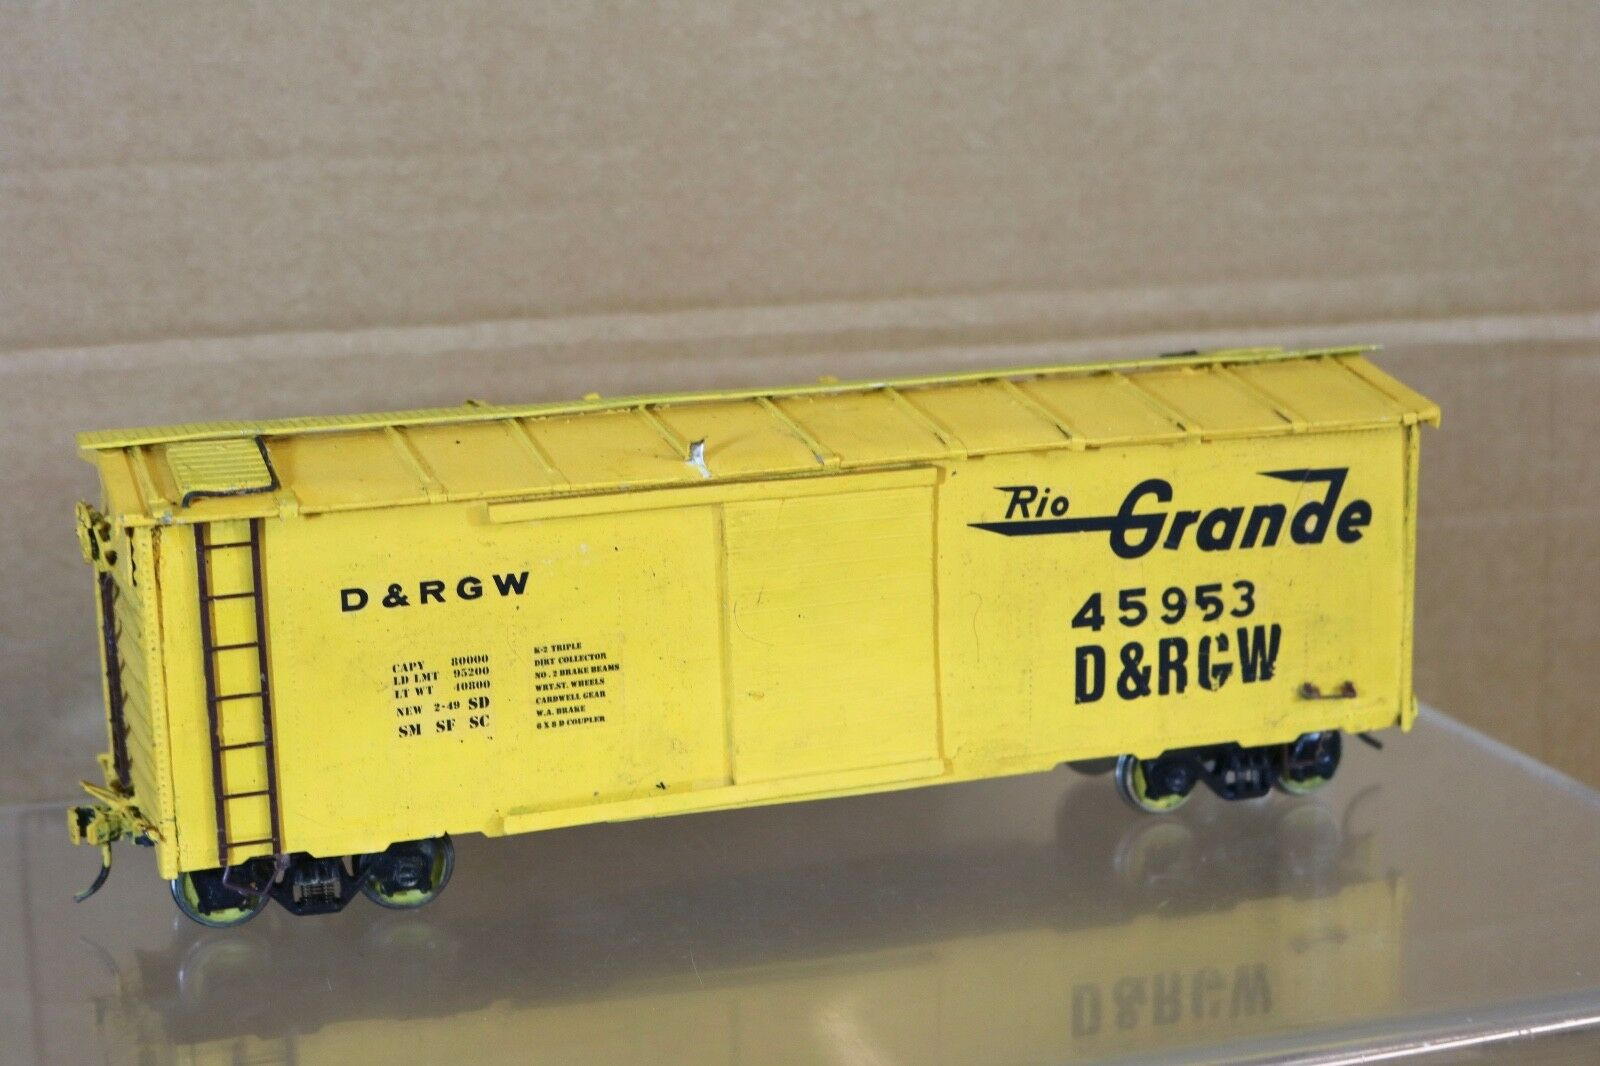 ALL NATION NATION NATION VINTAGE KIT BUILT WOOD O SCALE RIO GRANDE D&RGW BOXCAR WAGON 45958 f0cd93